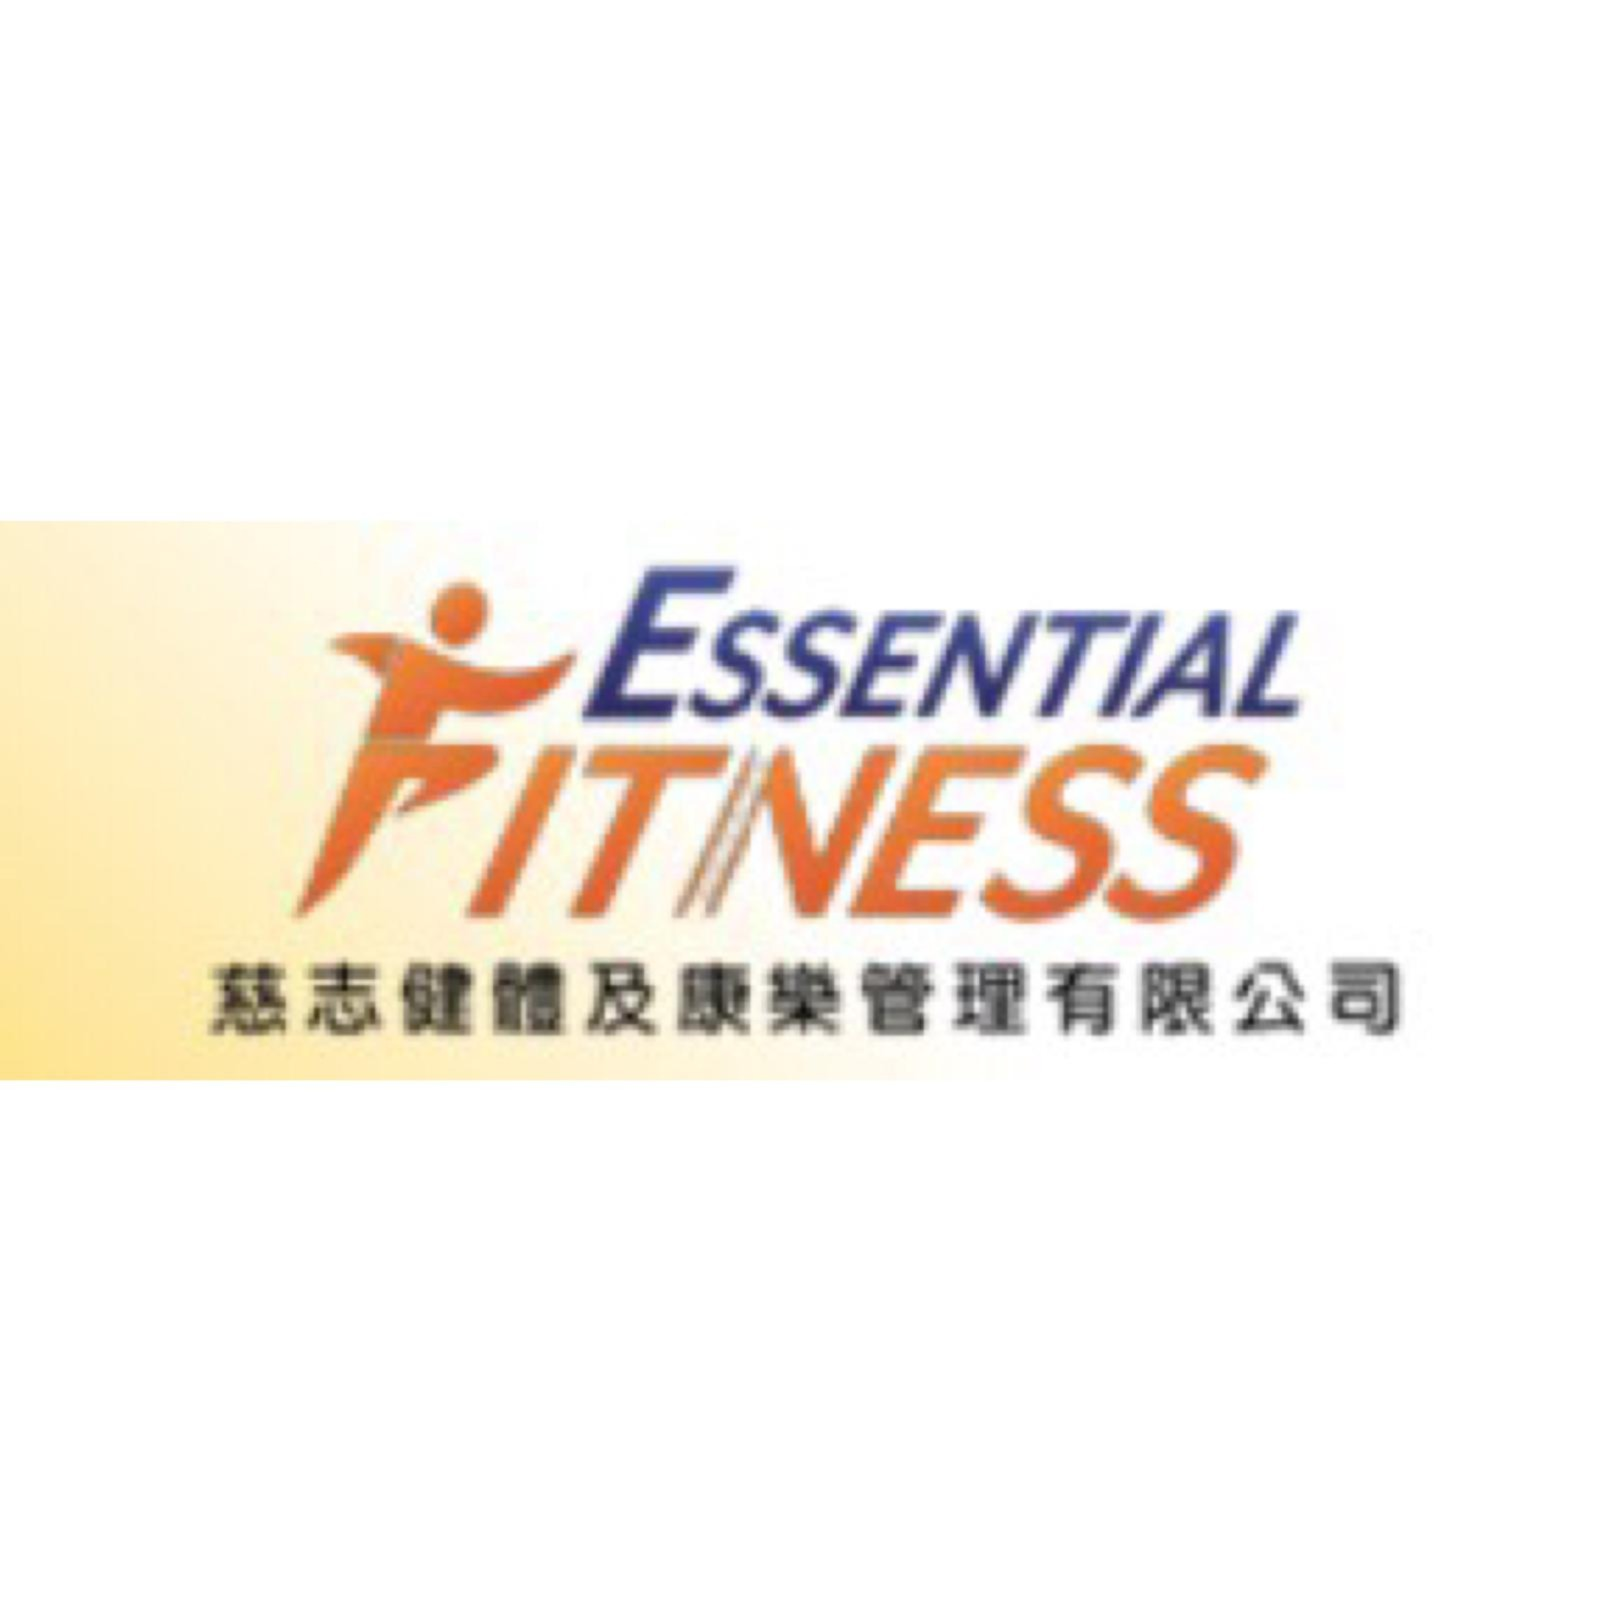 Essential Fitness